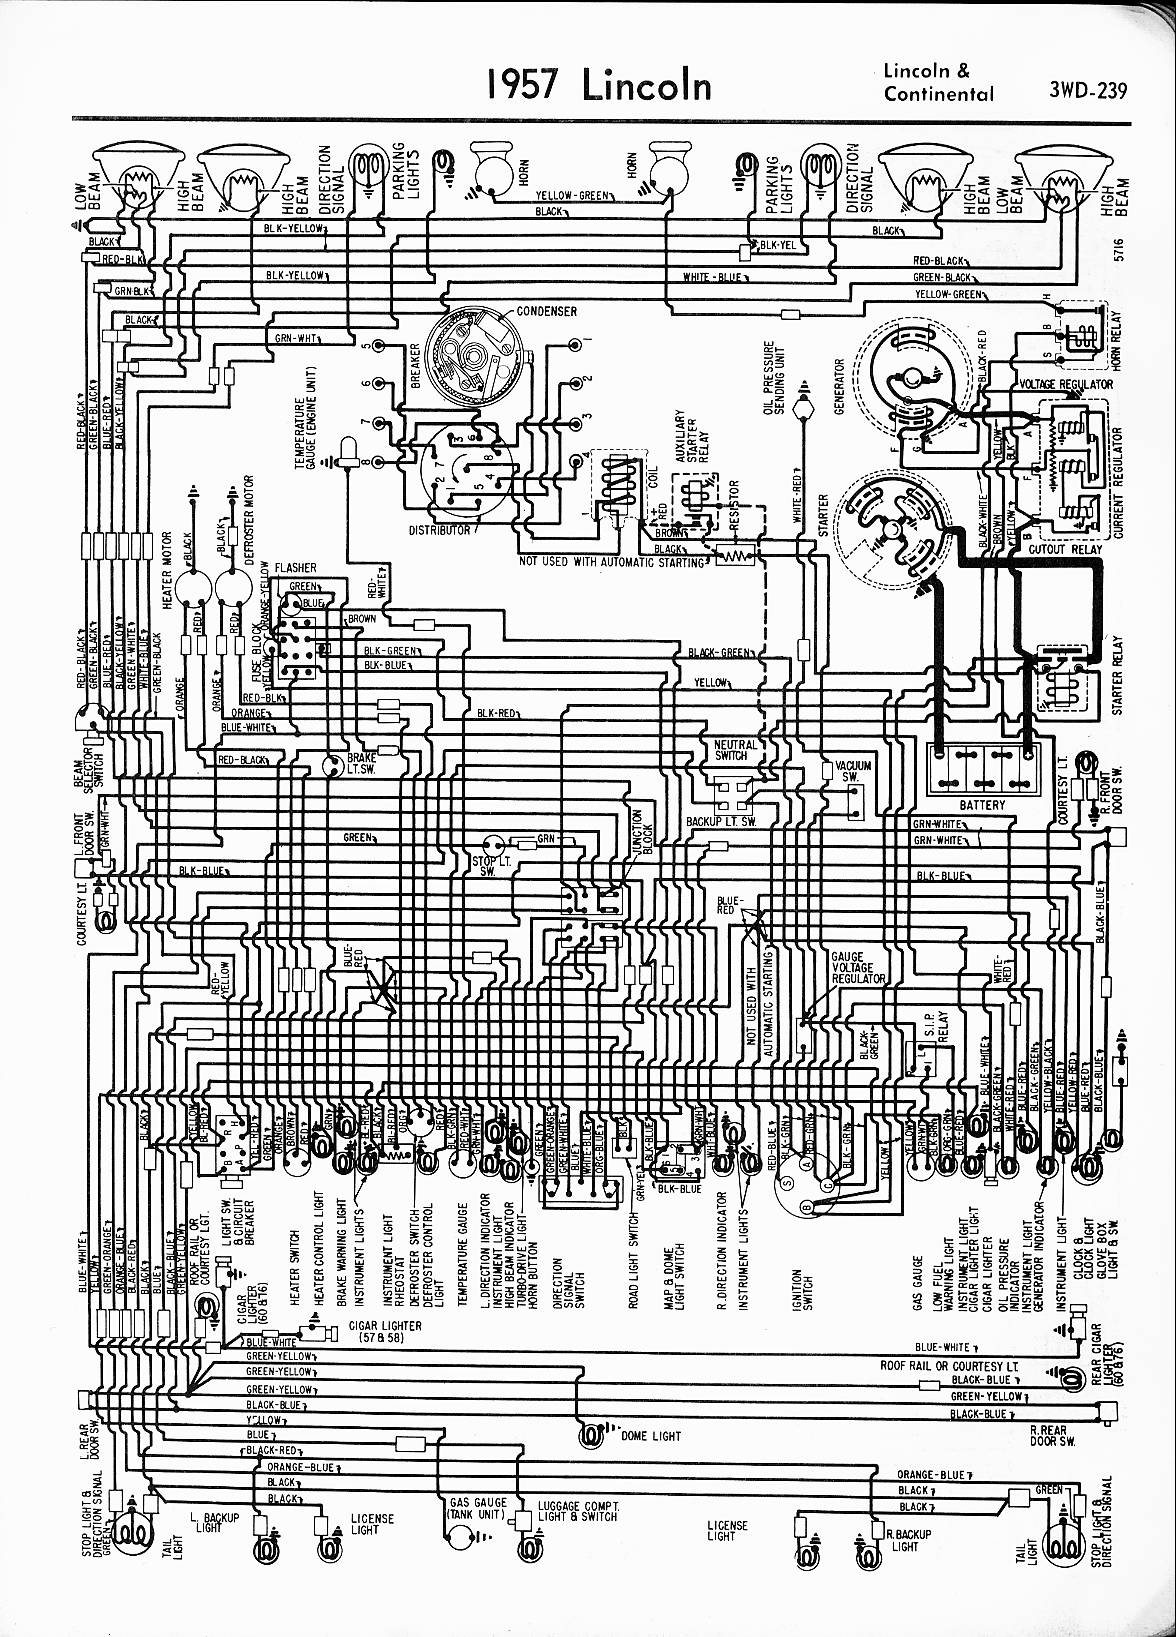 MWireLin_Lin57_z3wd 239z_001 lincoln wiring diagrams 1949 lincoln wiring diagram \u2022 free wiring lincoln foot pedal wiring diagram at edmiracle.co